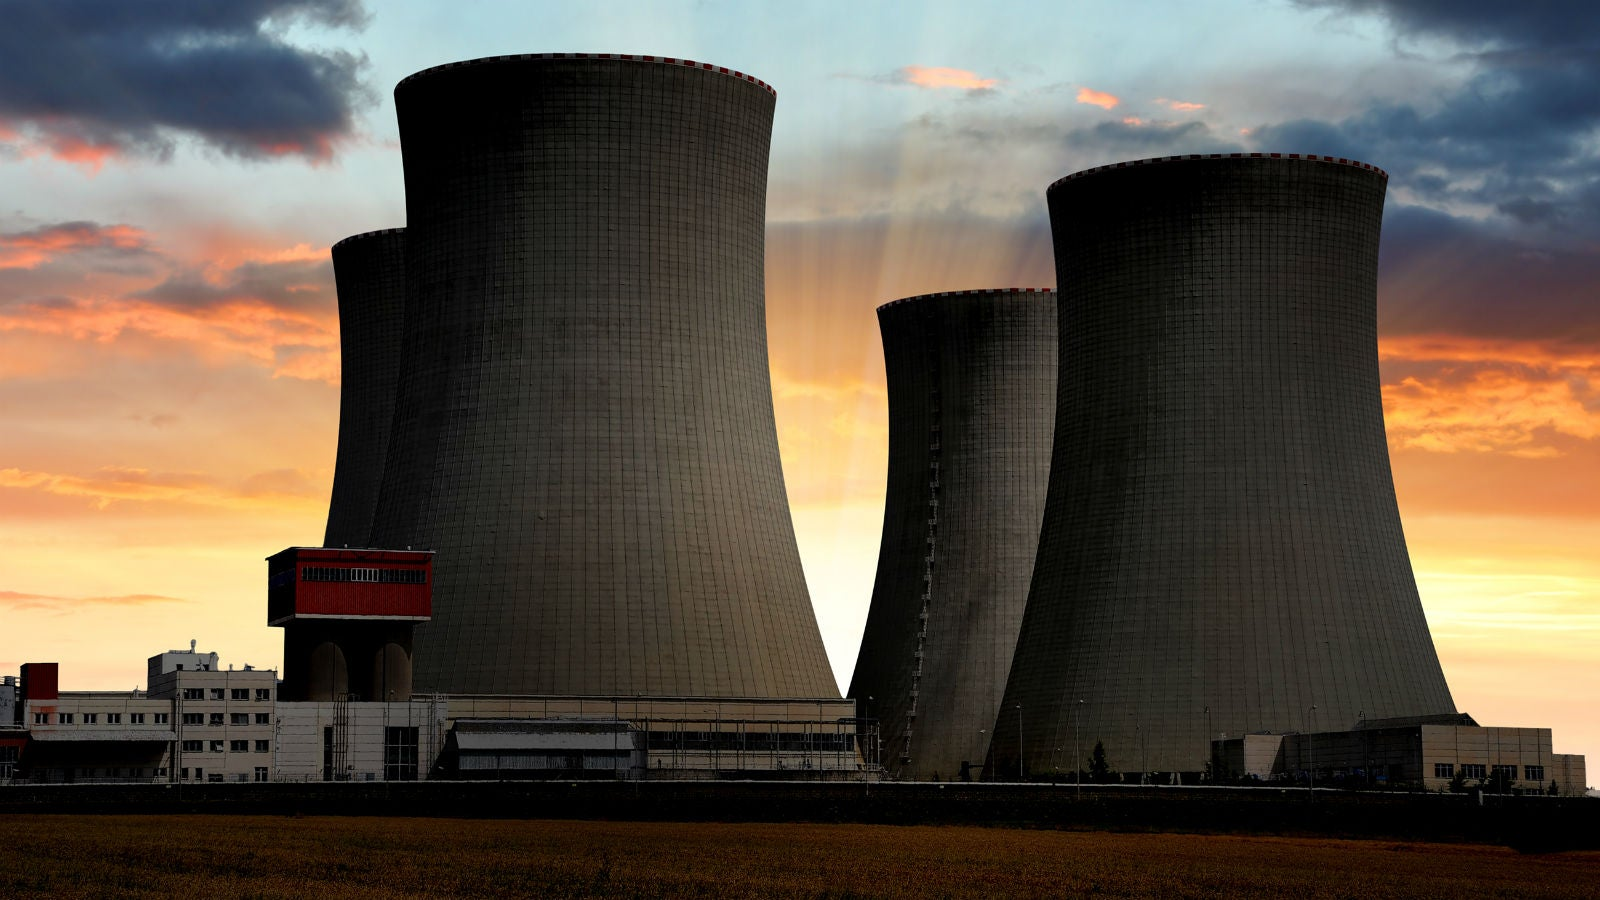 nuclear reactor Candu nuclear reactors are powered by uranium and cooled with heavy water learn how they work and how they differ from light water reactors.